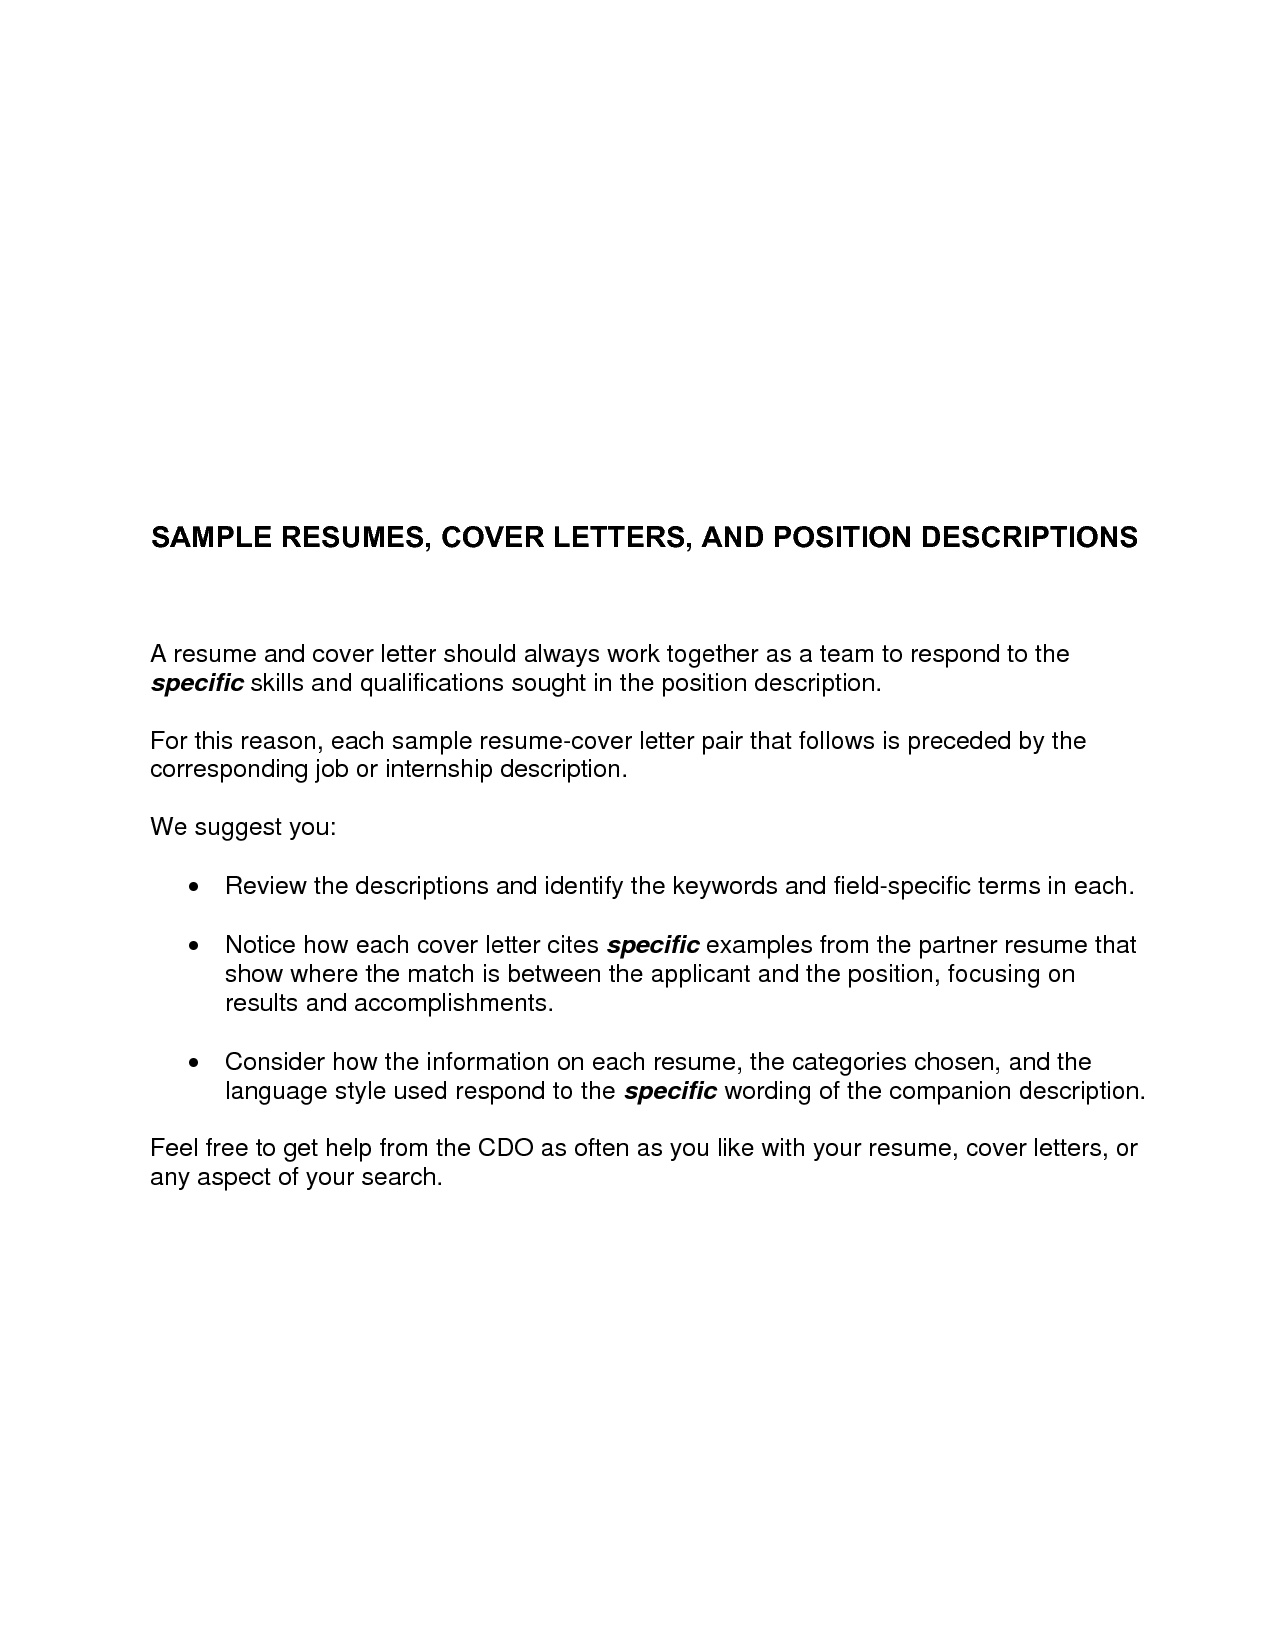 cover letters for resumes best templatesimple cover letter application letter sample - Cover Letters For Cv Samples